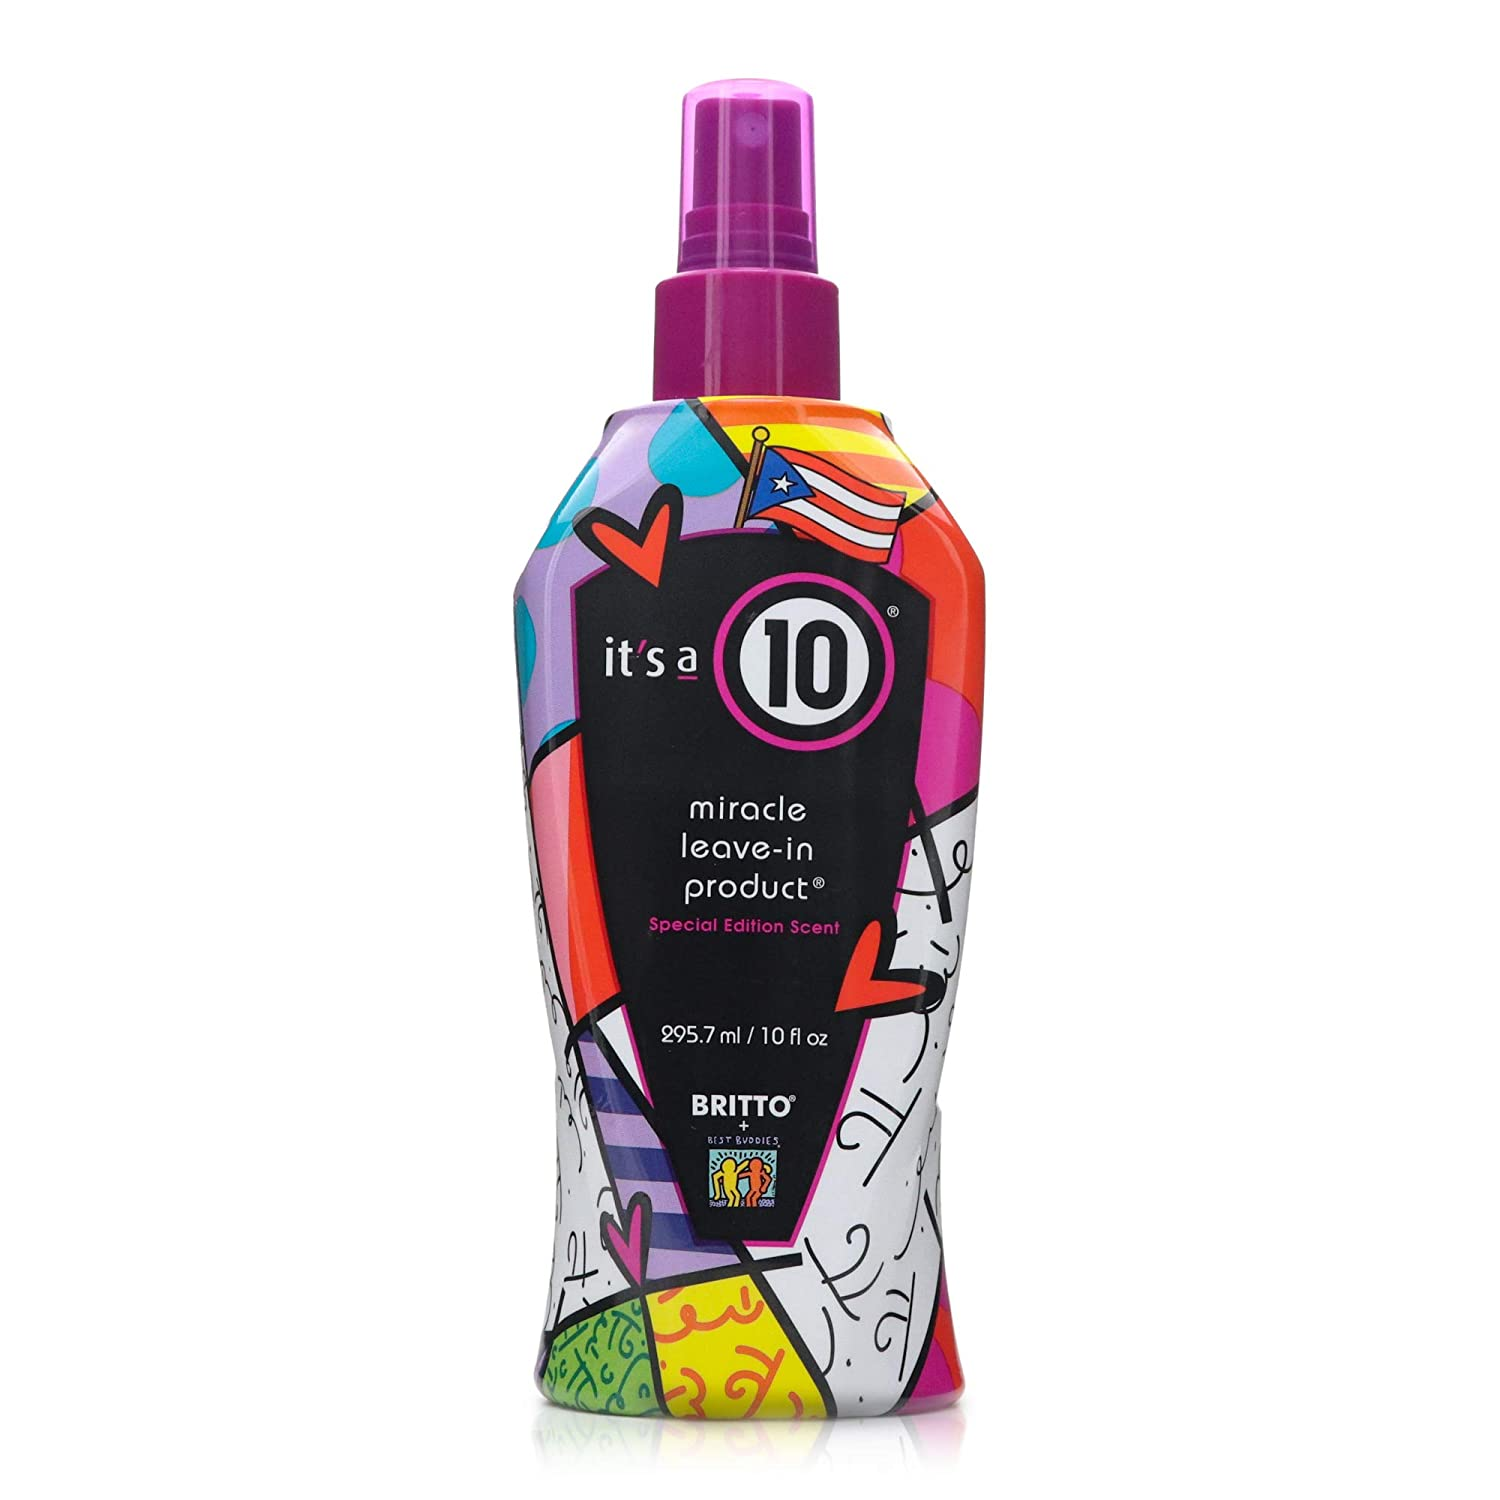 It's a 10 Haircare Limited Edition Miracle Leave-in Product, Designed by Romero Britto, 10 fl. oz.